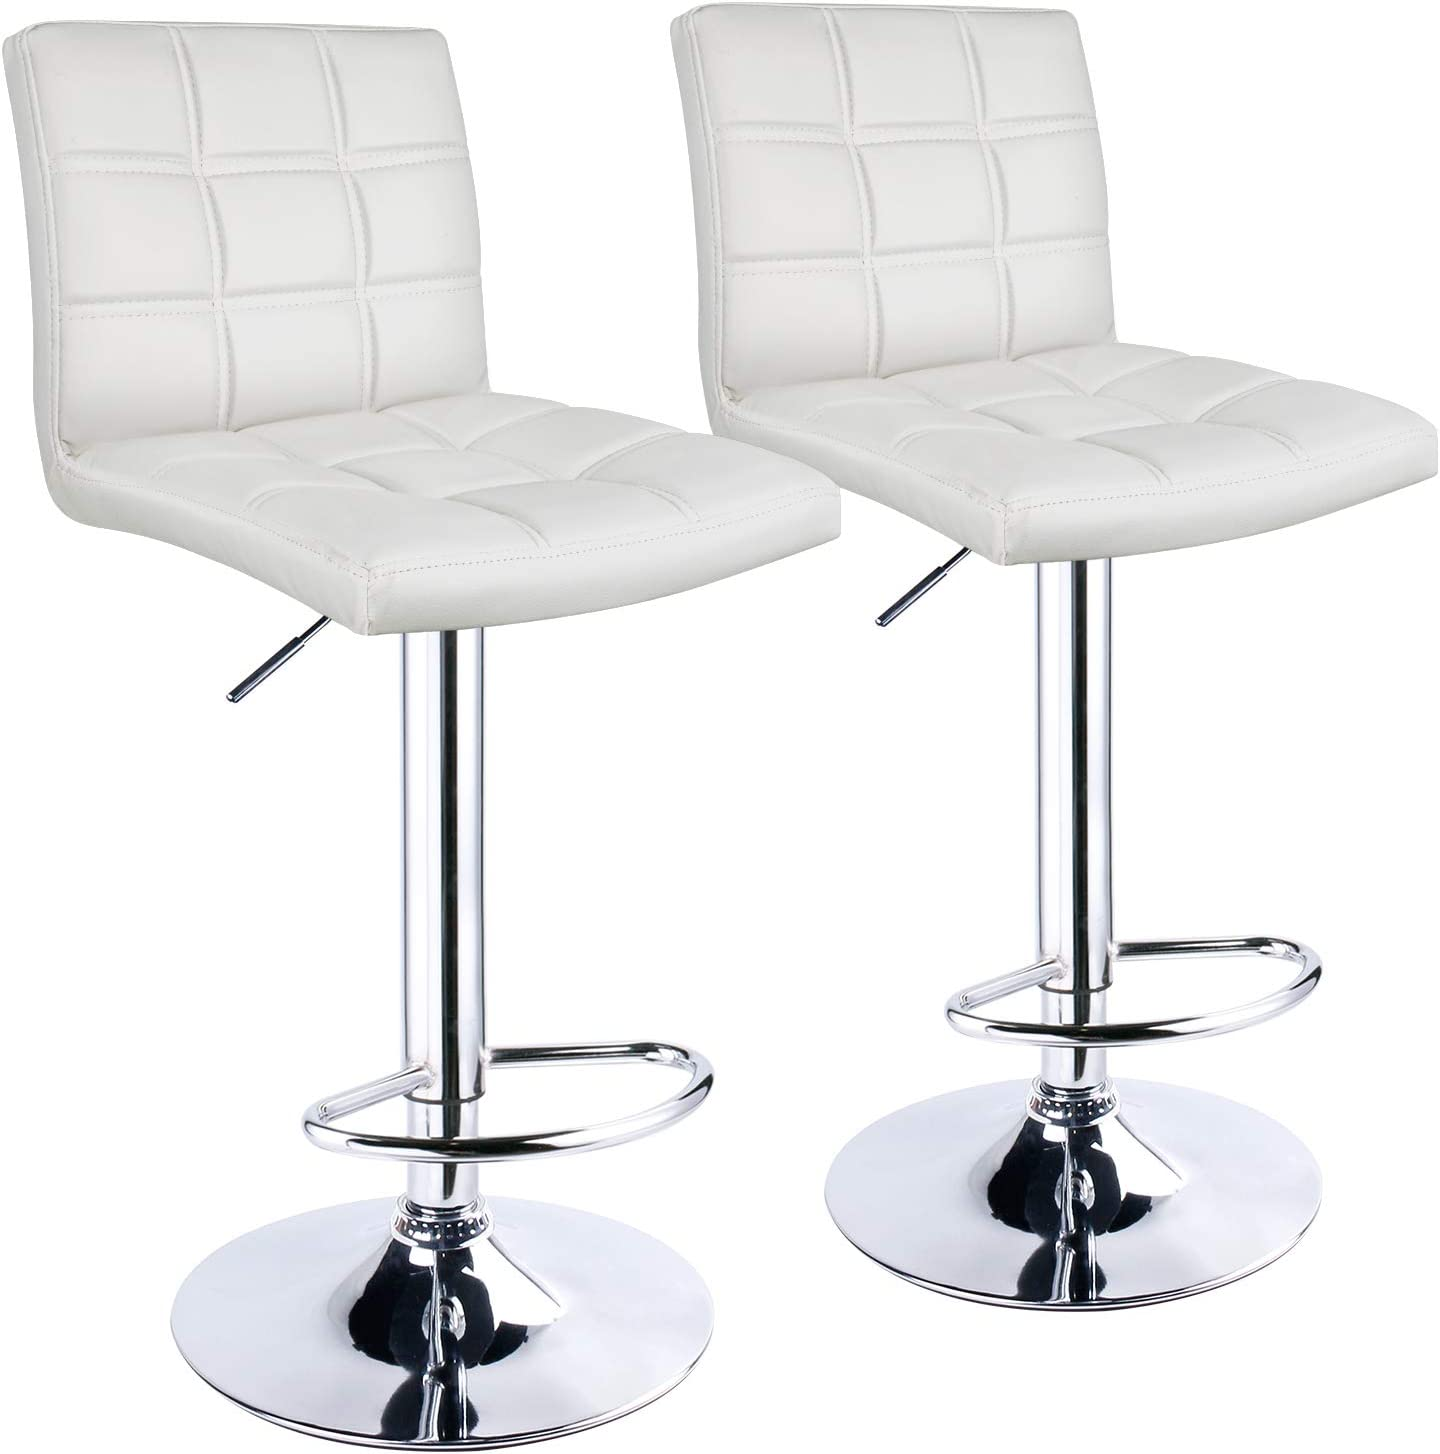 Leatherette Exterior,Double Needle Sewing,Height Adjustable,Chrome Footrest and Base,Bar Chairs for Kitchens,Counter and Home Leader Accessories Modern Bar Stools Set of 2 Red